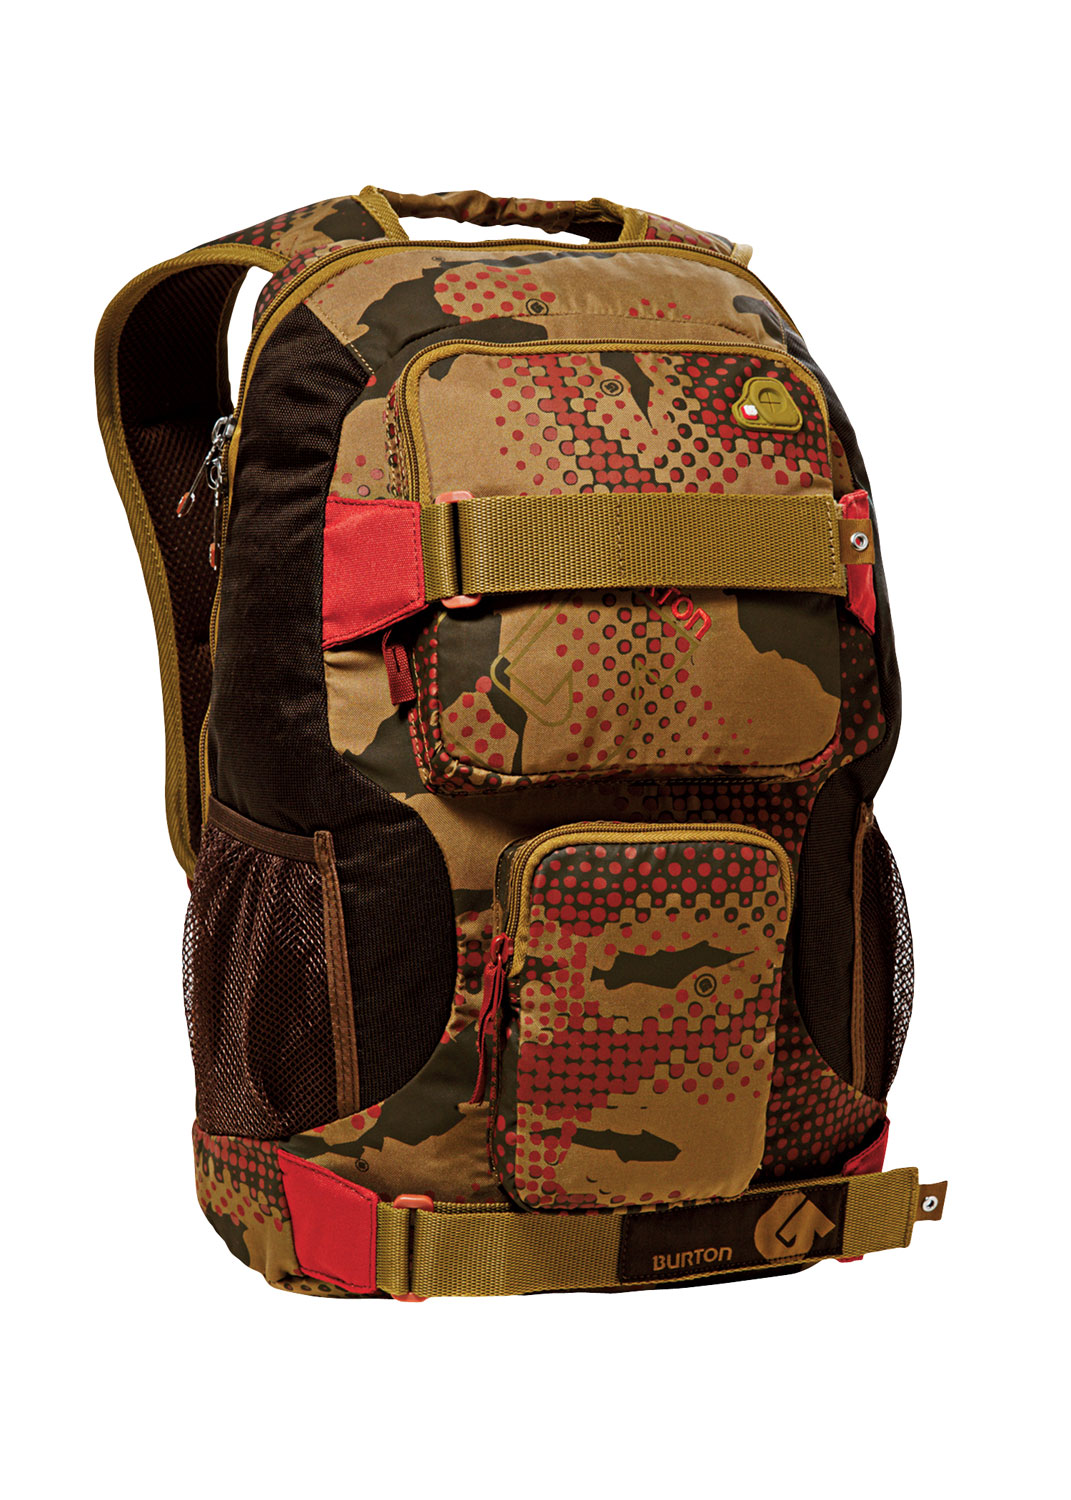 Snowboard If you're looking for a slick design and varied patterns on your backpack, then the Burton Treble Yell Backpack is up your prairie. With a Saharan desert contrast, this backpack is made for people who enjoy the outdoors. It features interconnected head phone options and a comfortable weight distribution design, which takes out the ache of long term wear. For school kids on the go, it even offers room for a laptop, among other things; making this a good all-around backpack to have at your disposal.Key Features of the Burton Treble Yell Backpack: 17L [17in x 12in x 8in] [43cm x 30cm x 21cm] Laptop Pocket [Fits Most 12 in. Laptops] Vertical Skate Carry Cush Ergonomic Shoulder Harness Sound Pocket with Headphone Cable Port - $23.95